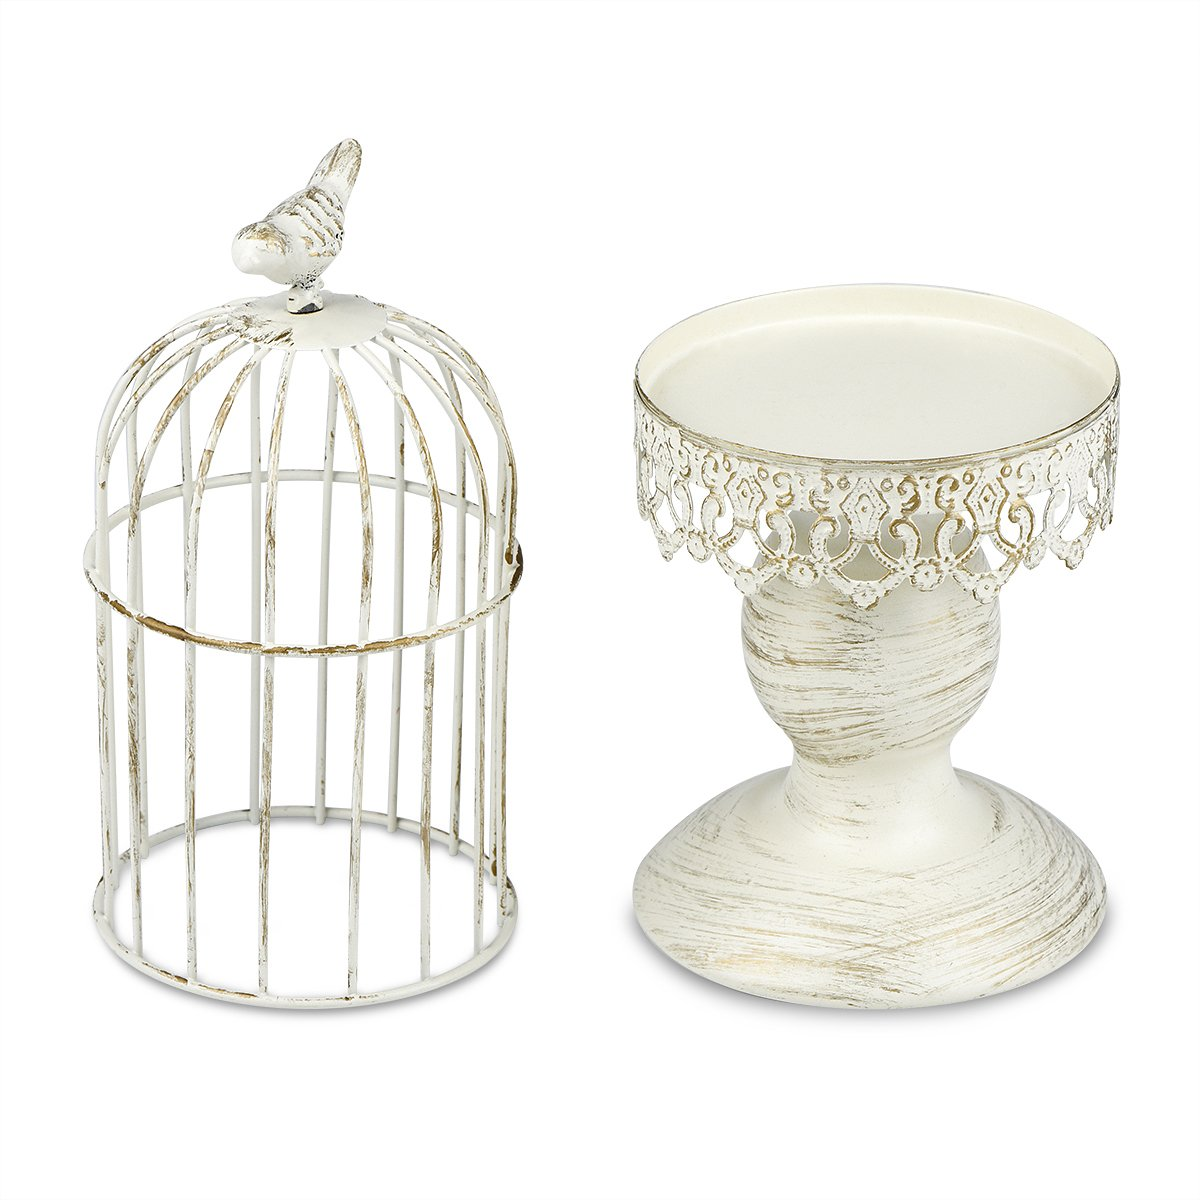 Candle Holder Metal Birdcage Vintage Candlestick Decoration Candle Stick Holder for Wedding Centerpieces Birthday Party Christmas Valentine's Day Dining Table Home Decoration(Birdcage-Black) QiLi